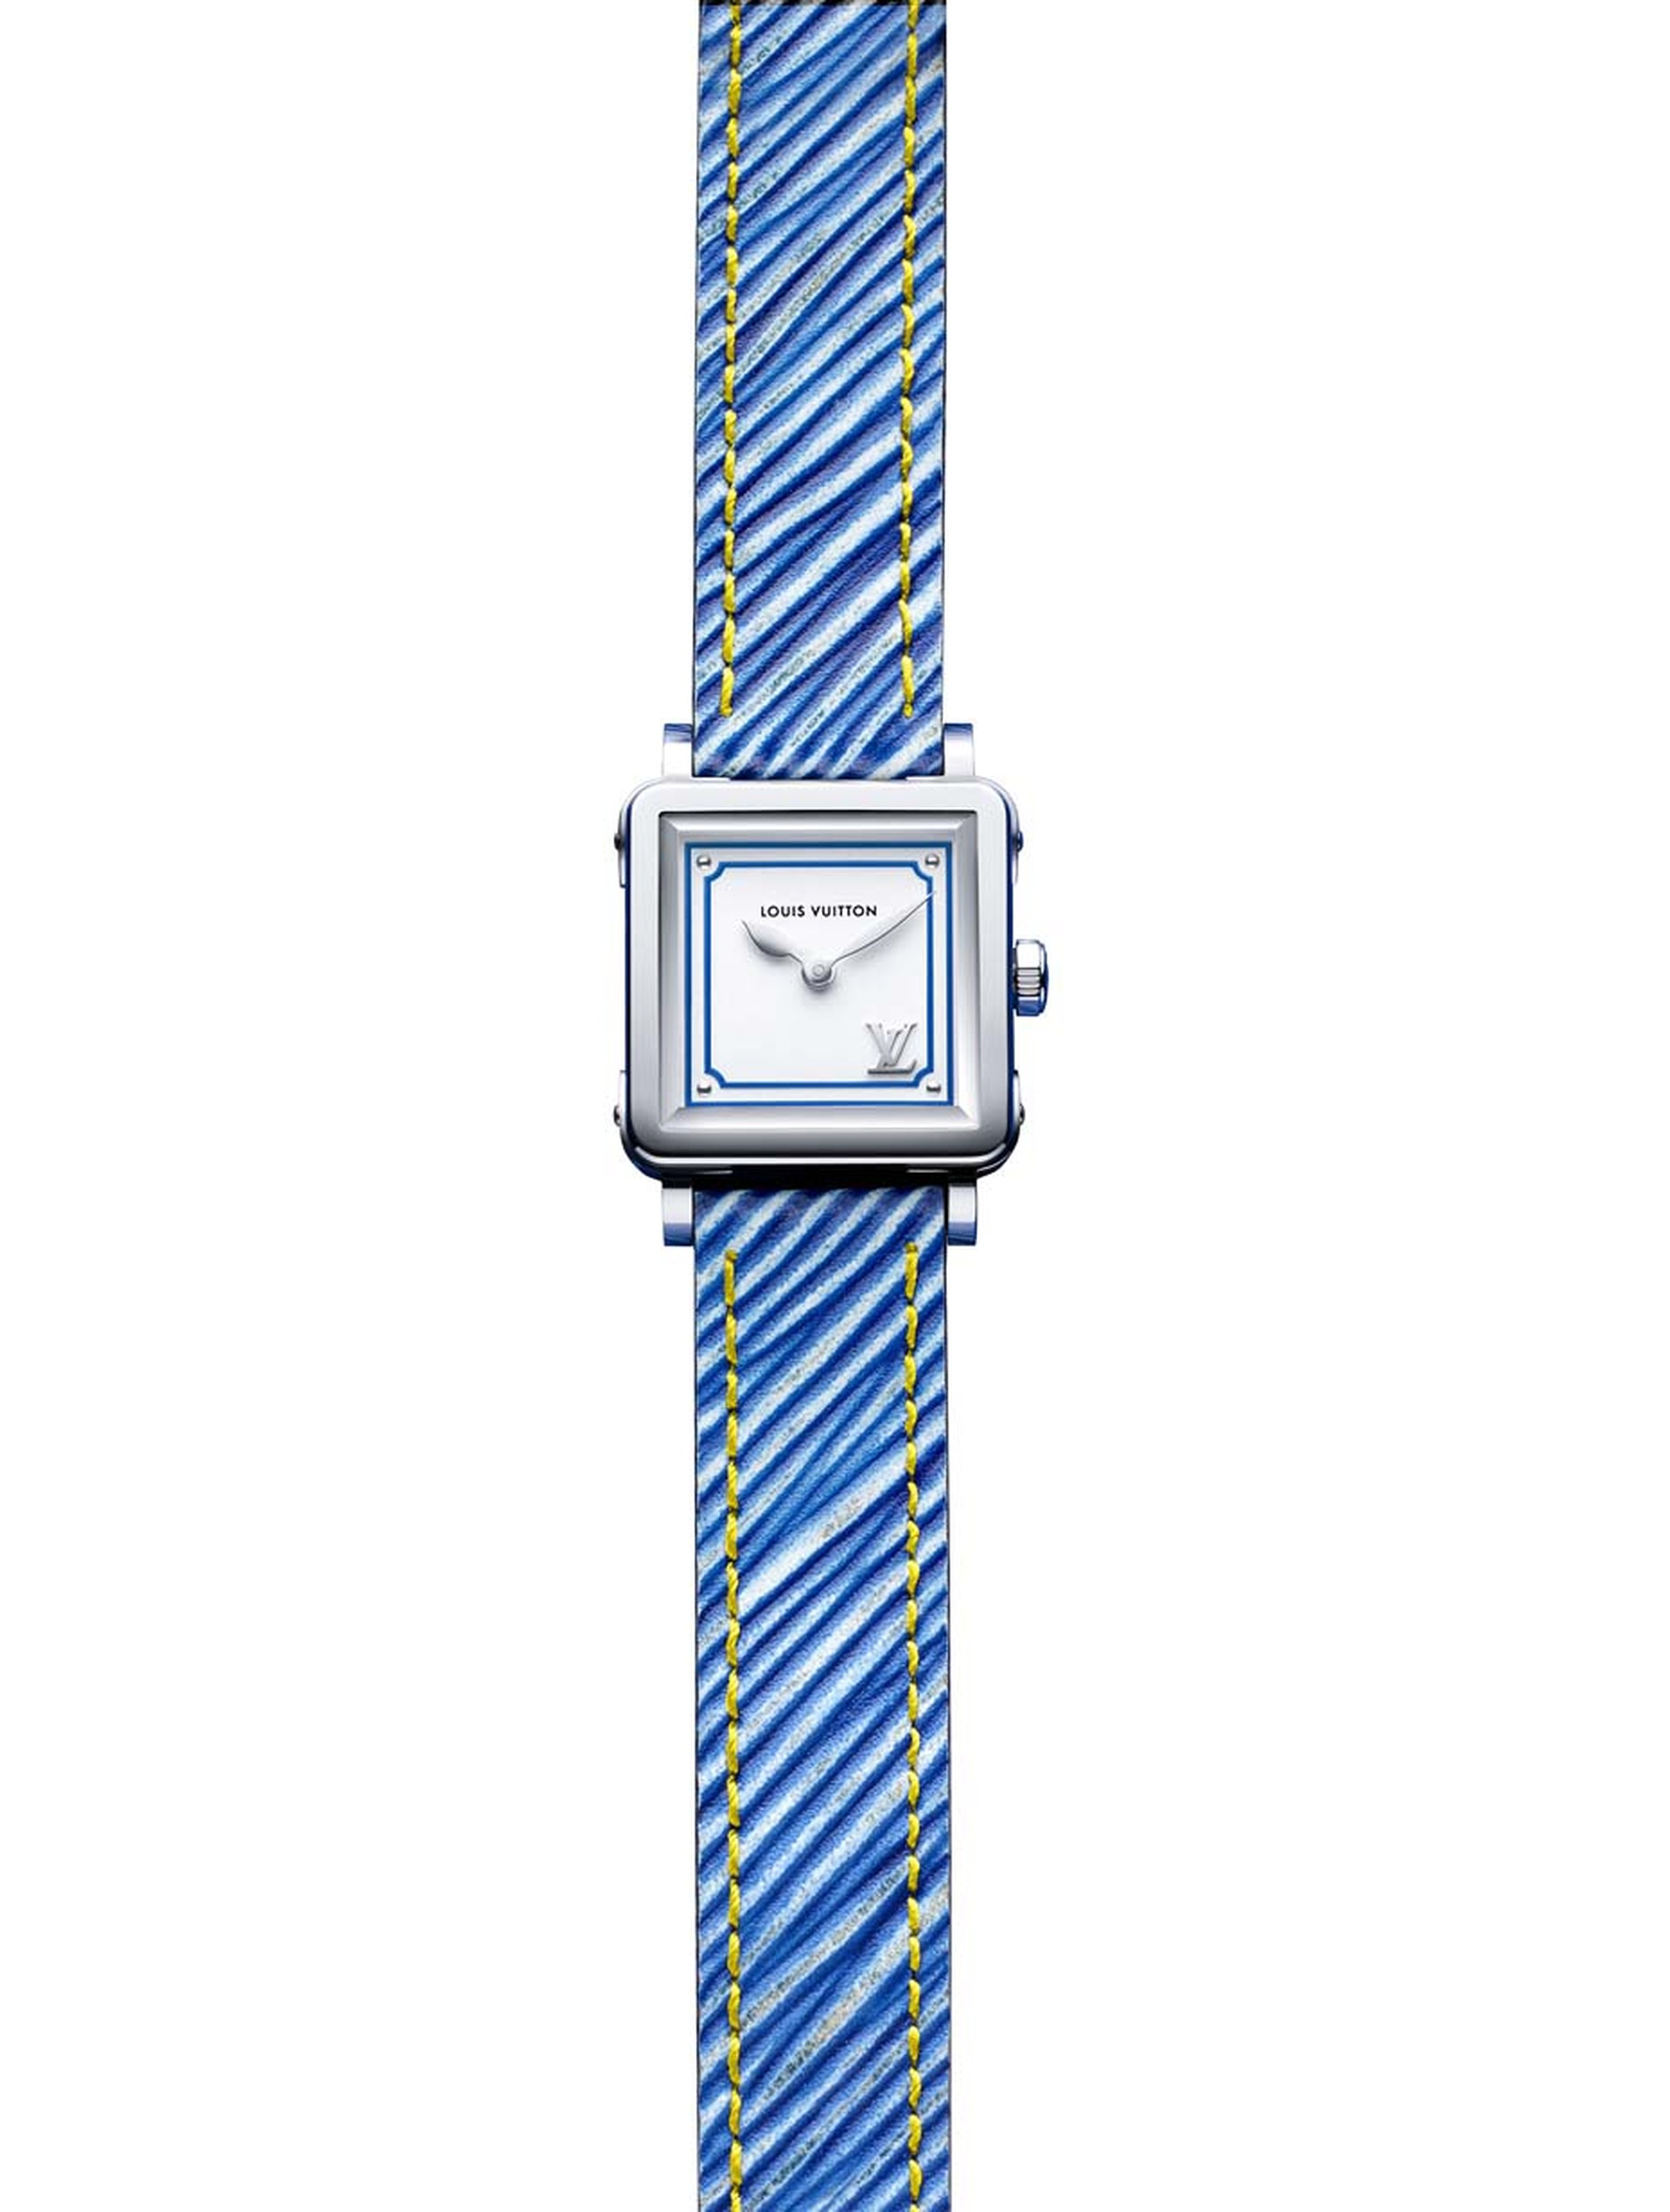 Flashes of colour frame the dial of the new Louis Vuitton Emprise Epi ladies' watch. In this denim blue version, the steel case and silver opaline dial are complemented by an Epi leather strap with yellow overstitching.